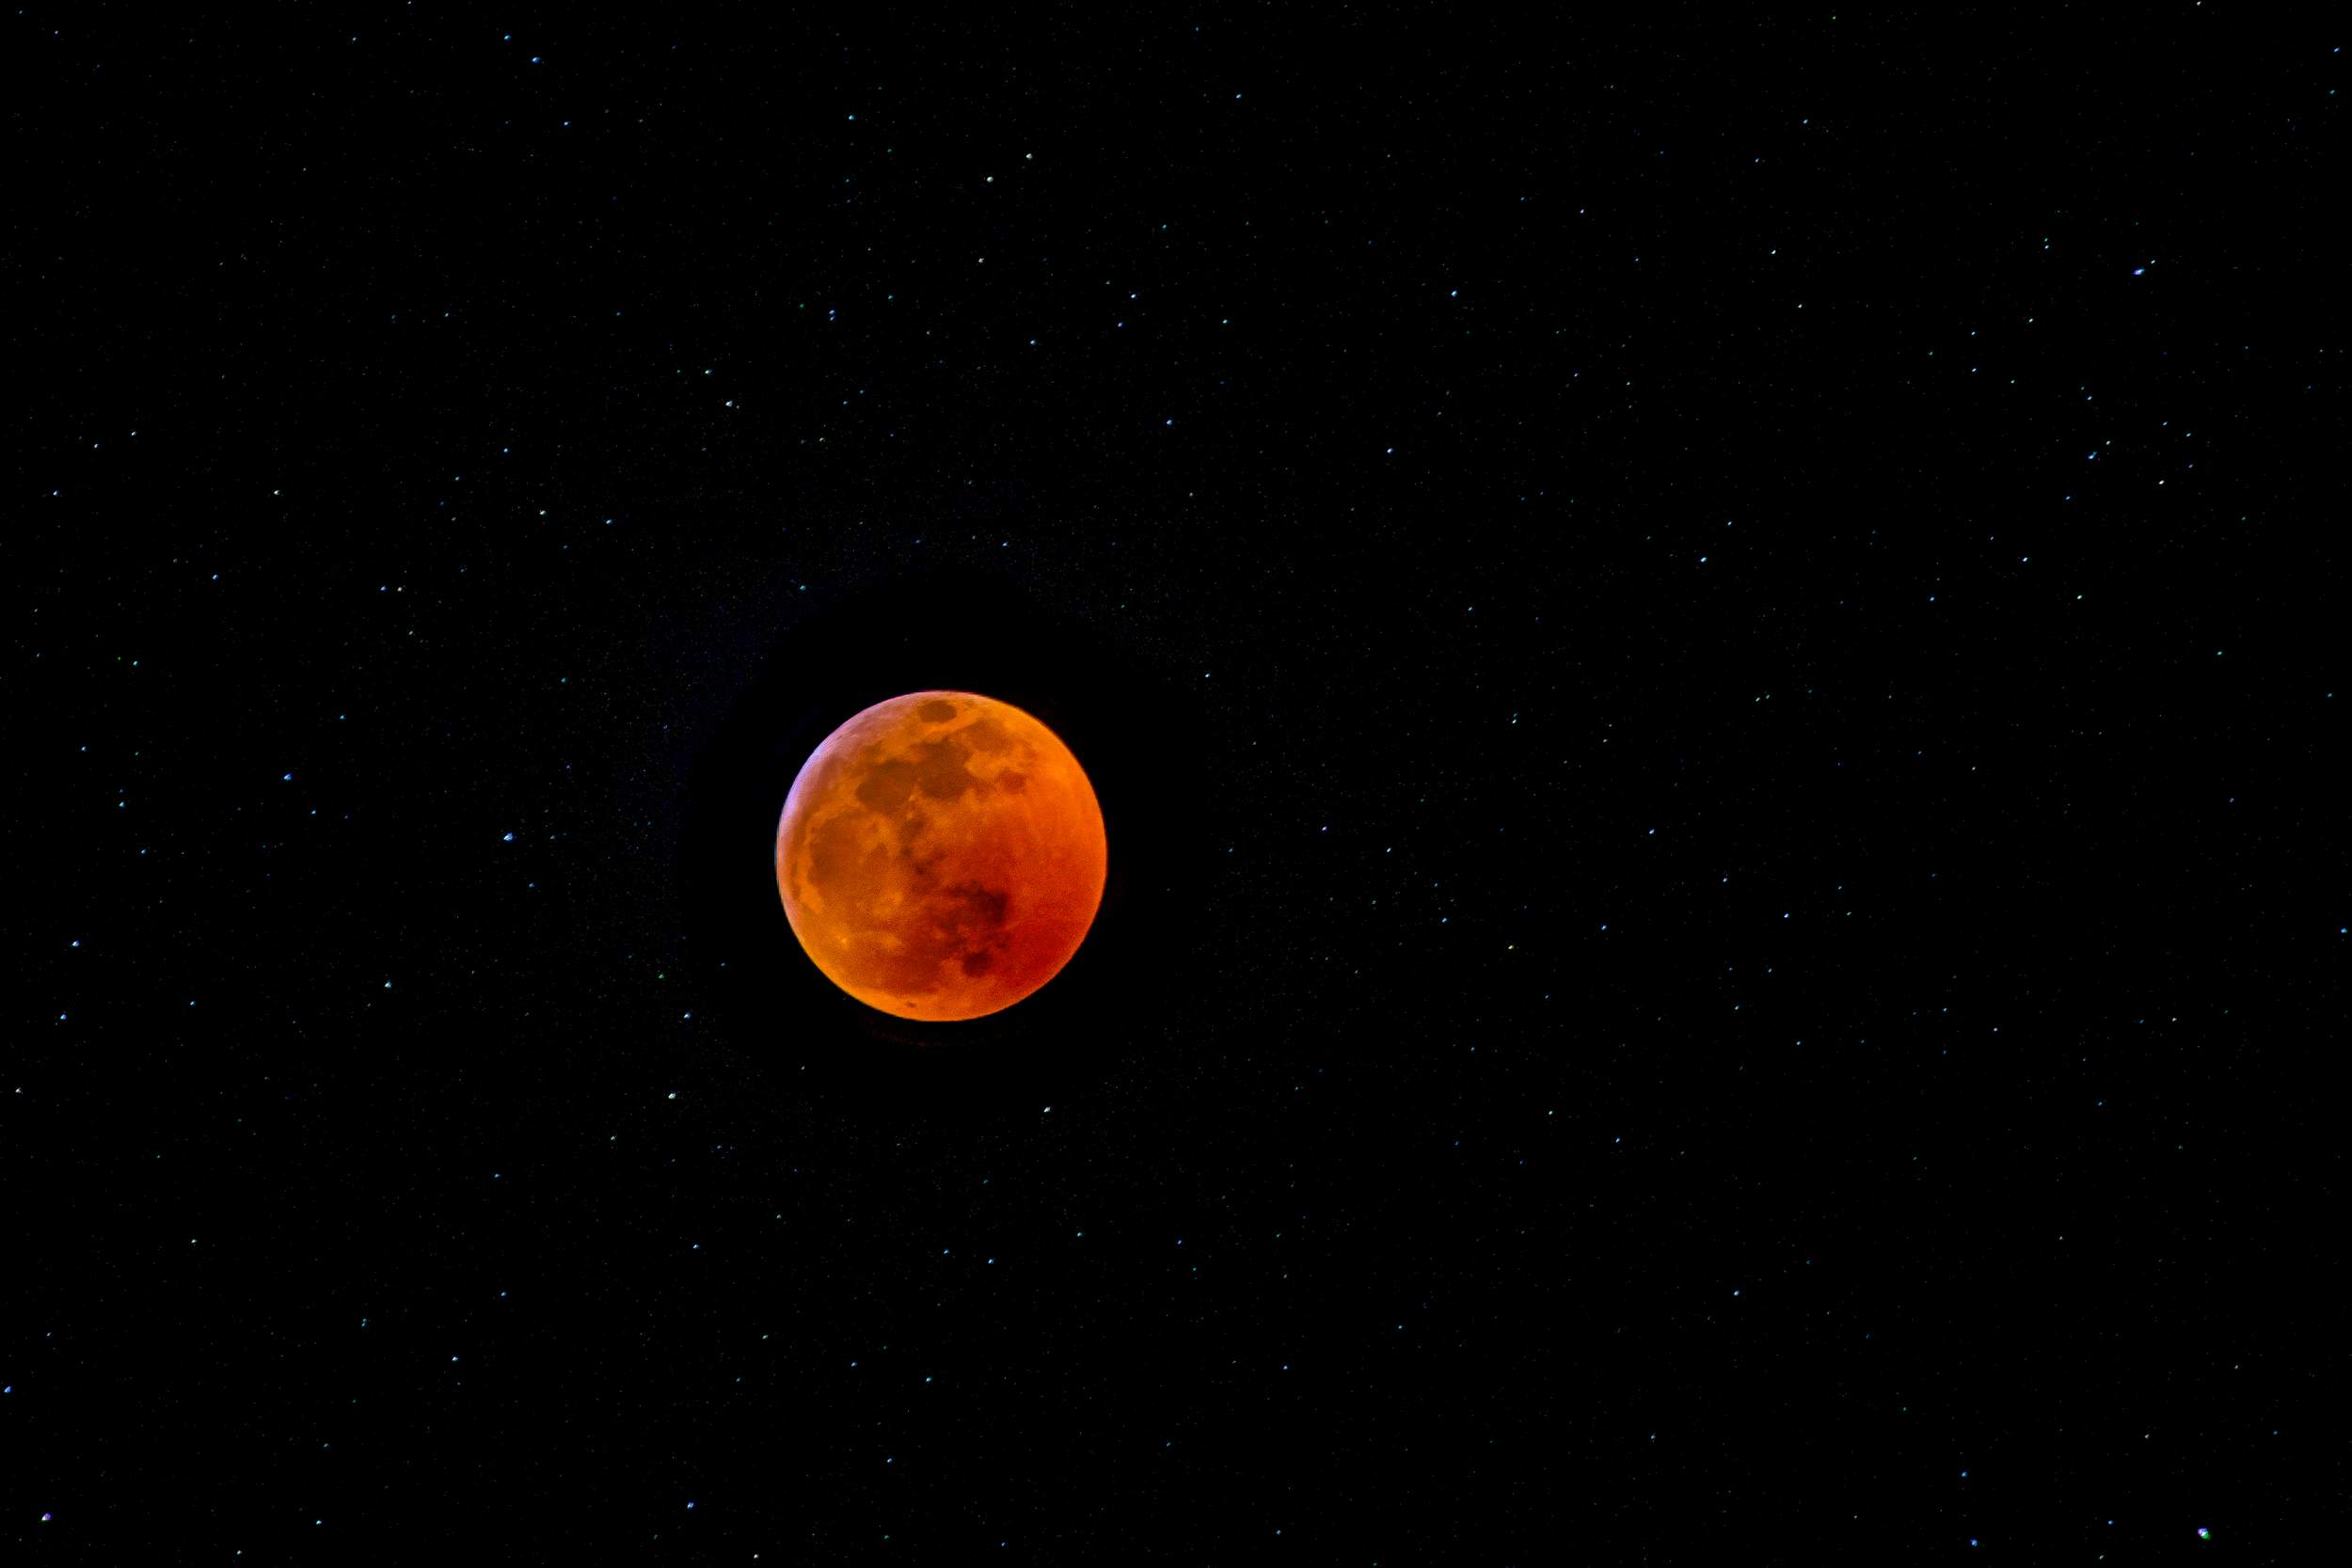 A Meteor Struck the Moon During the Total Lunar Eclipse